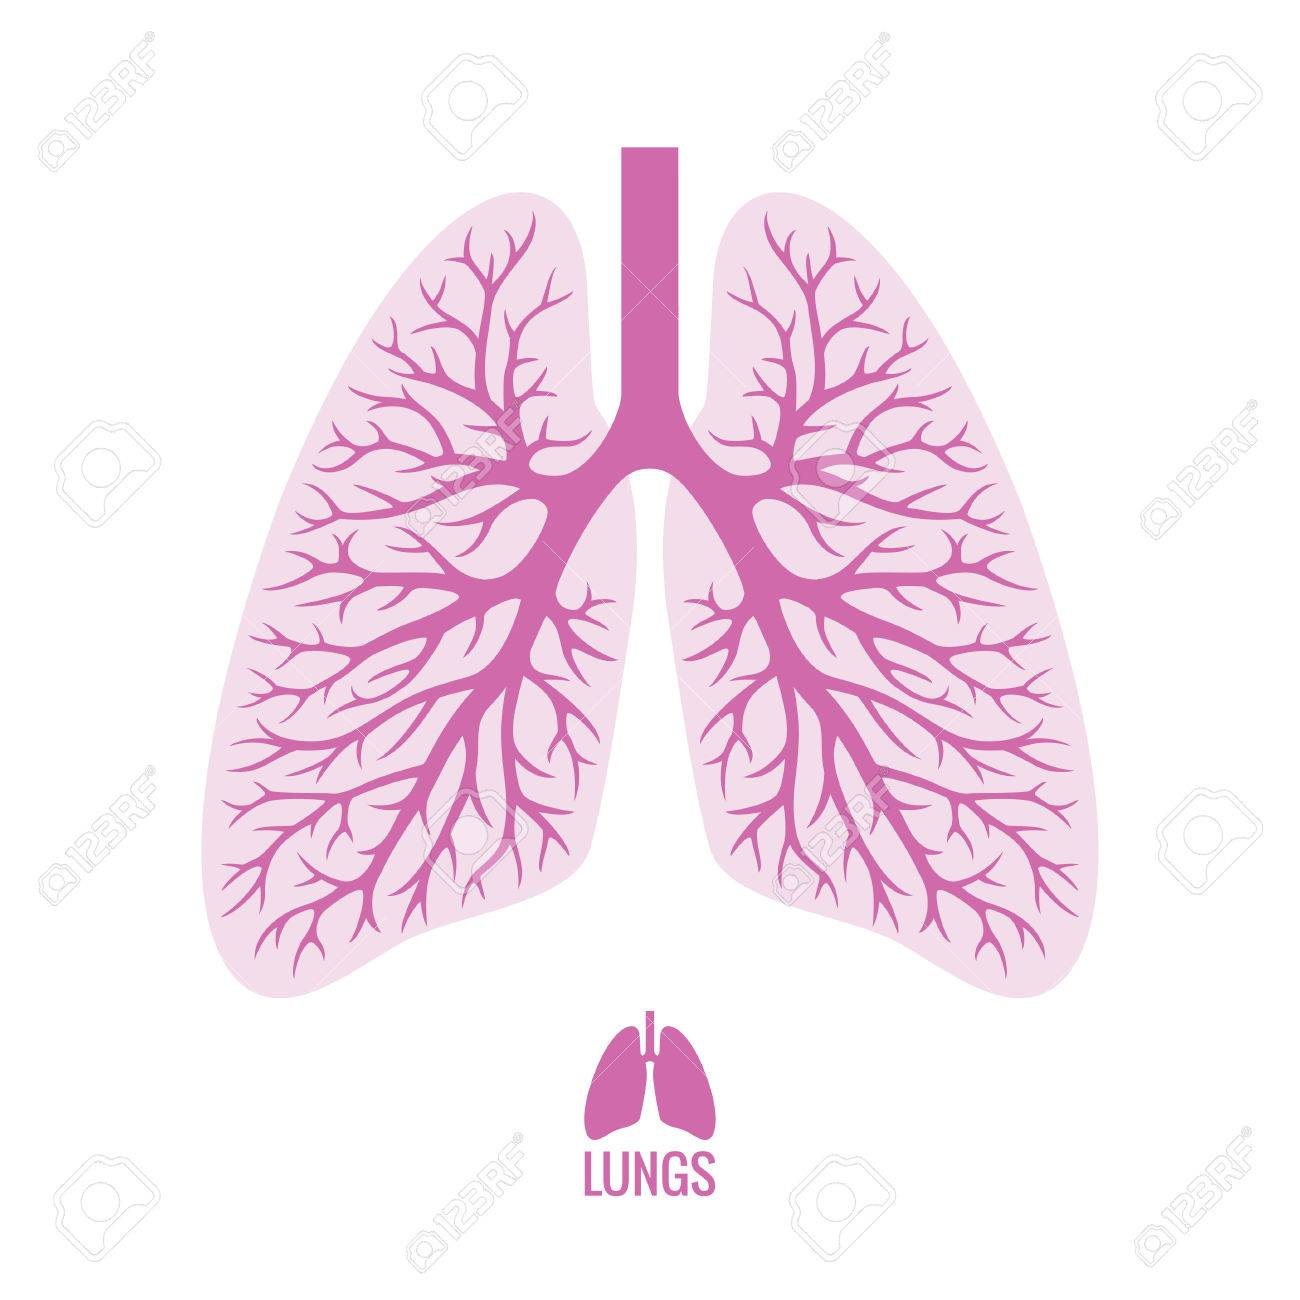 Human Lungs With Bronchial Tree Royalty Free Cliparts, Vectors, And ...